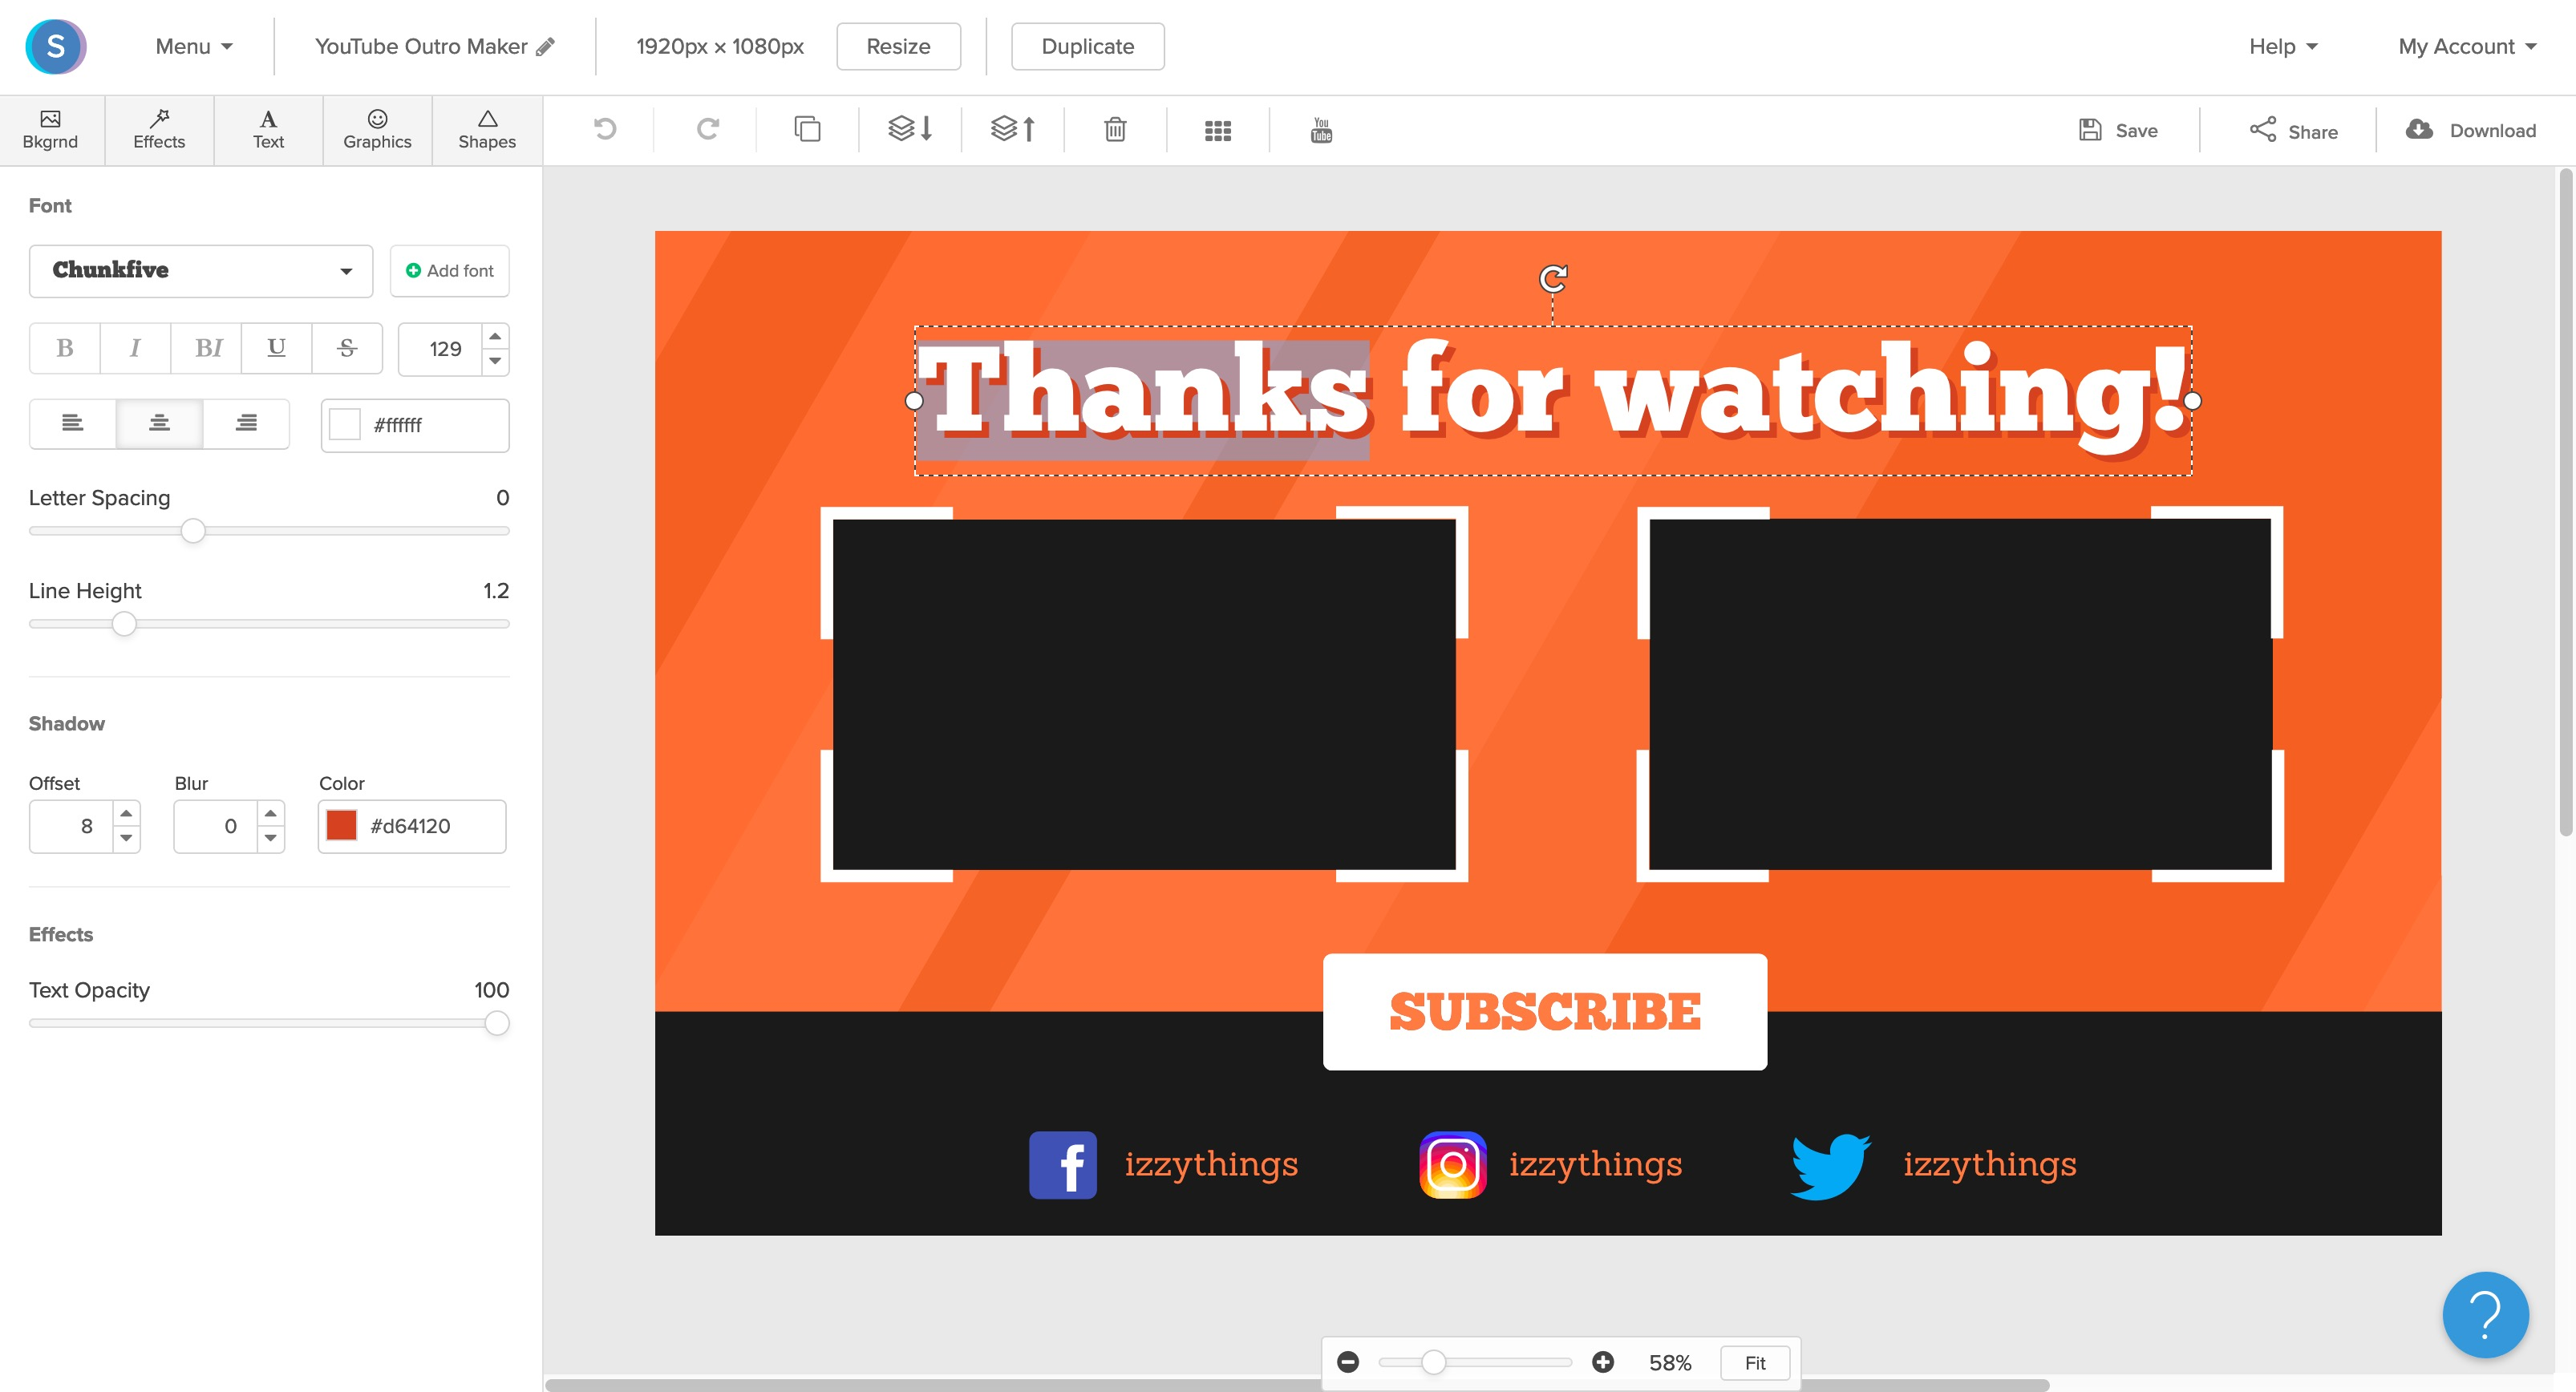 YouTube Outro maker